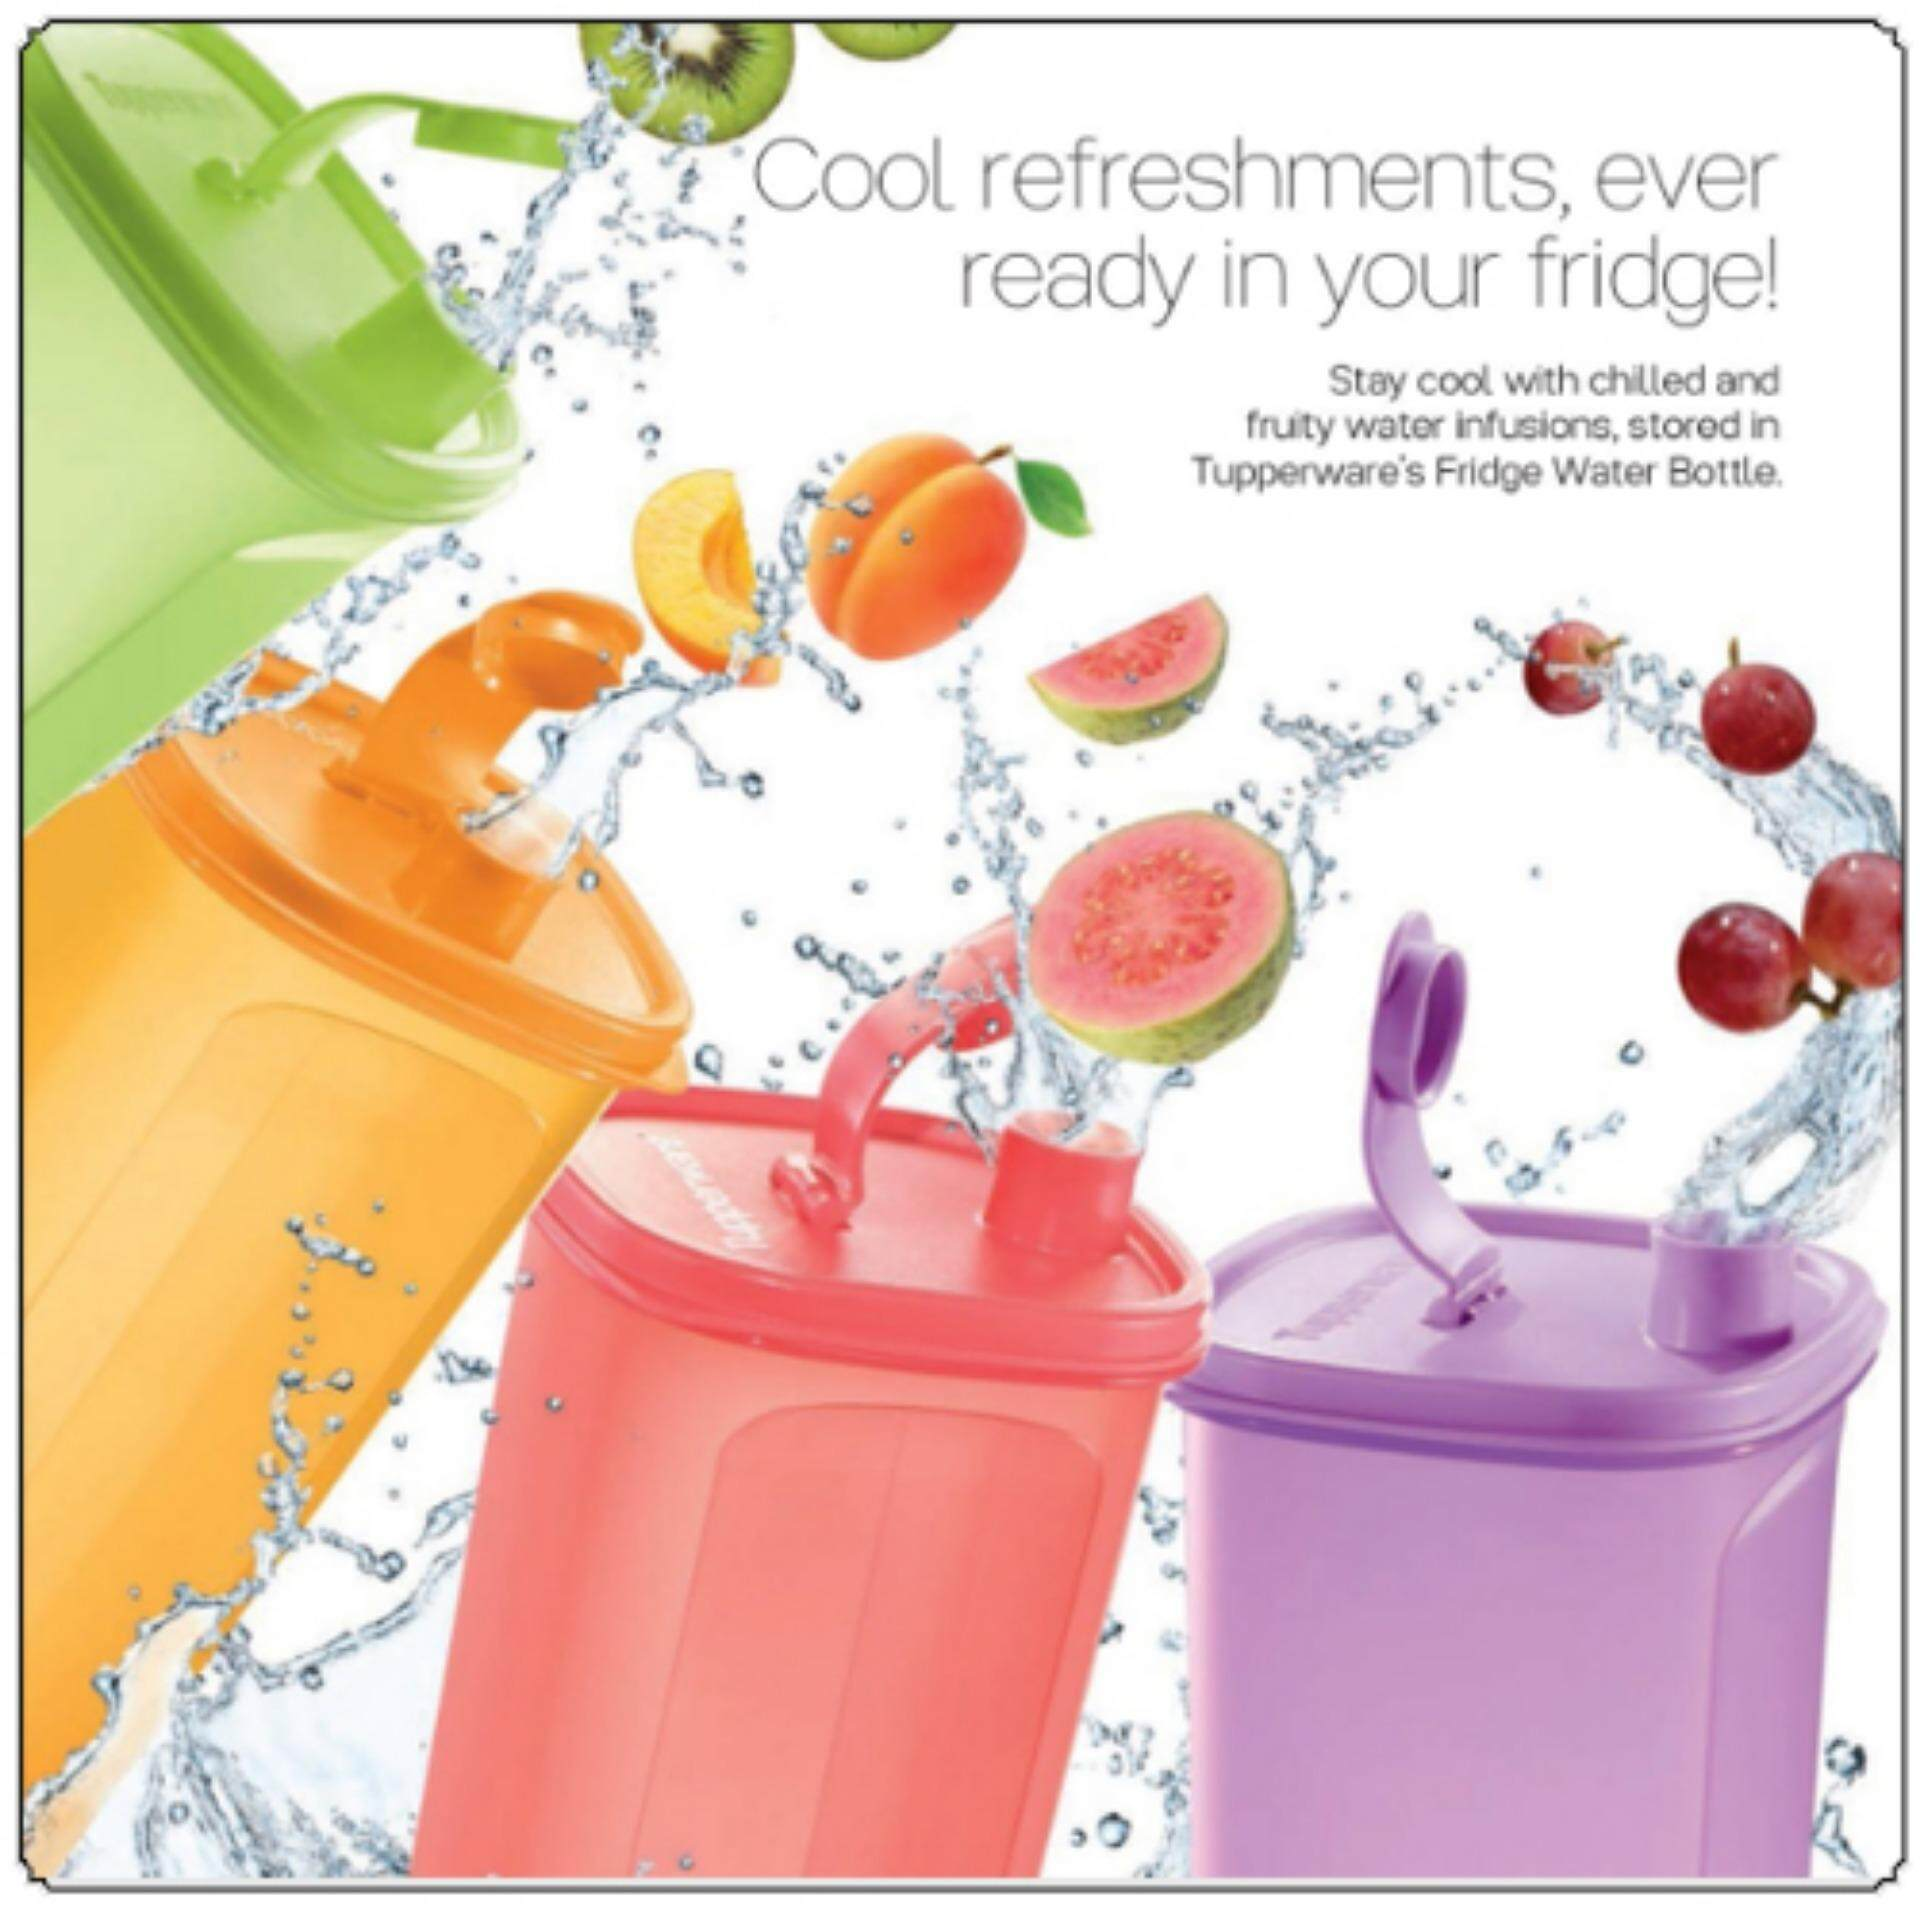 Tupperware Fridge Water Bottle (1) 2.0L with (1) Pouch - Random Color Send - 1 set only